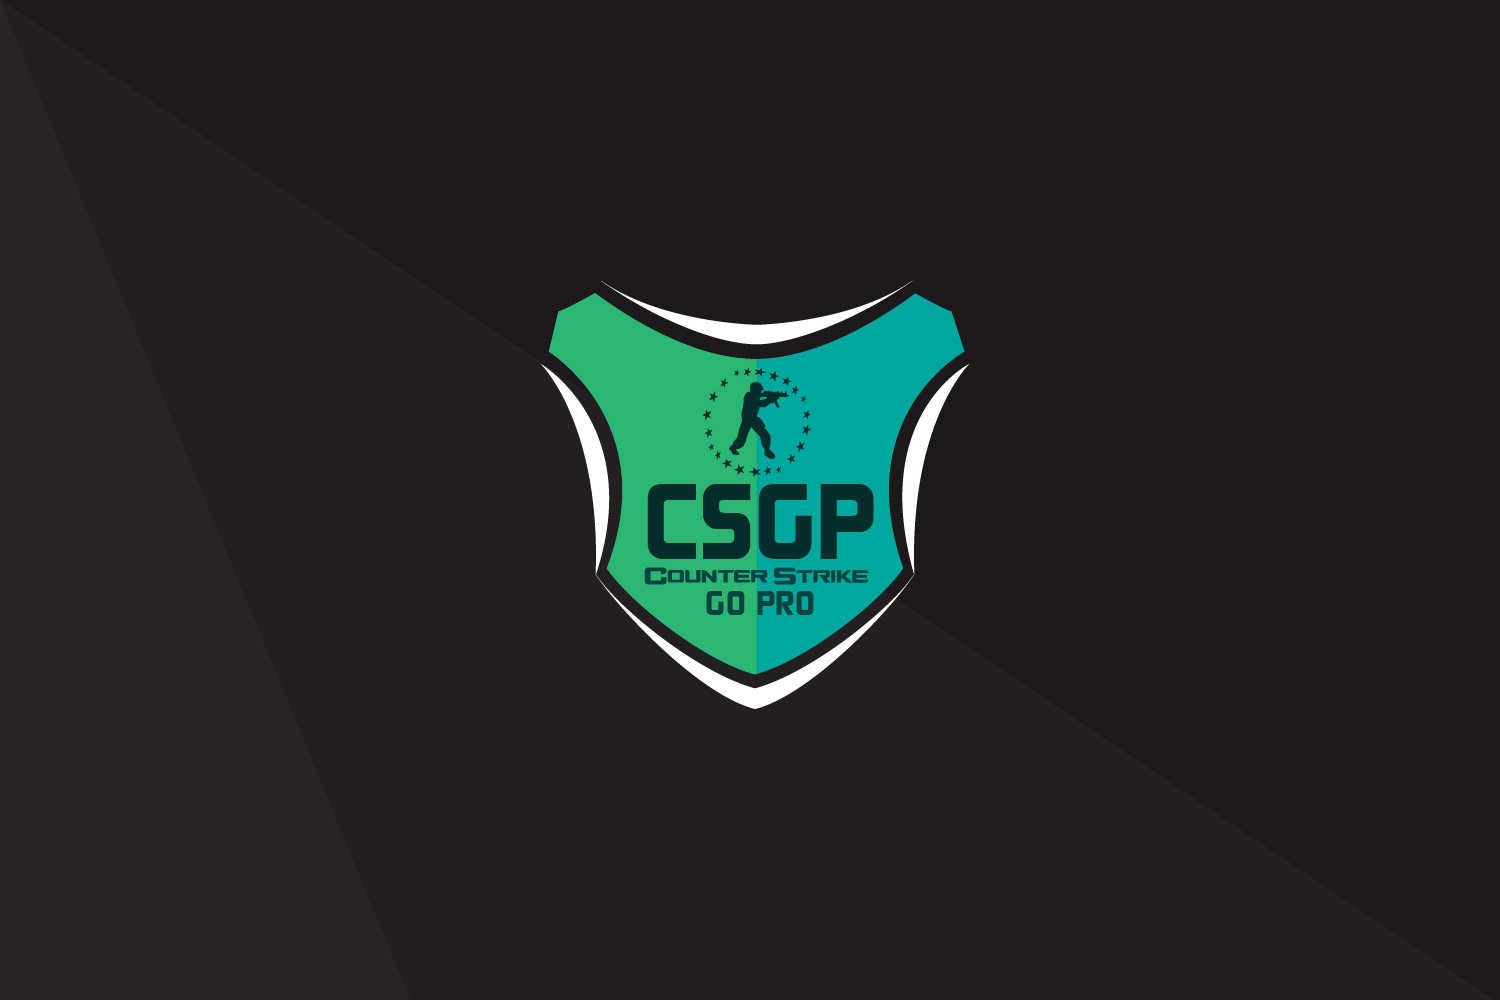 CSGP csgo gaming team logo